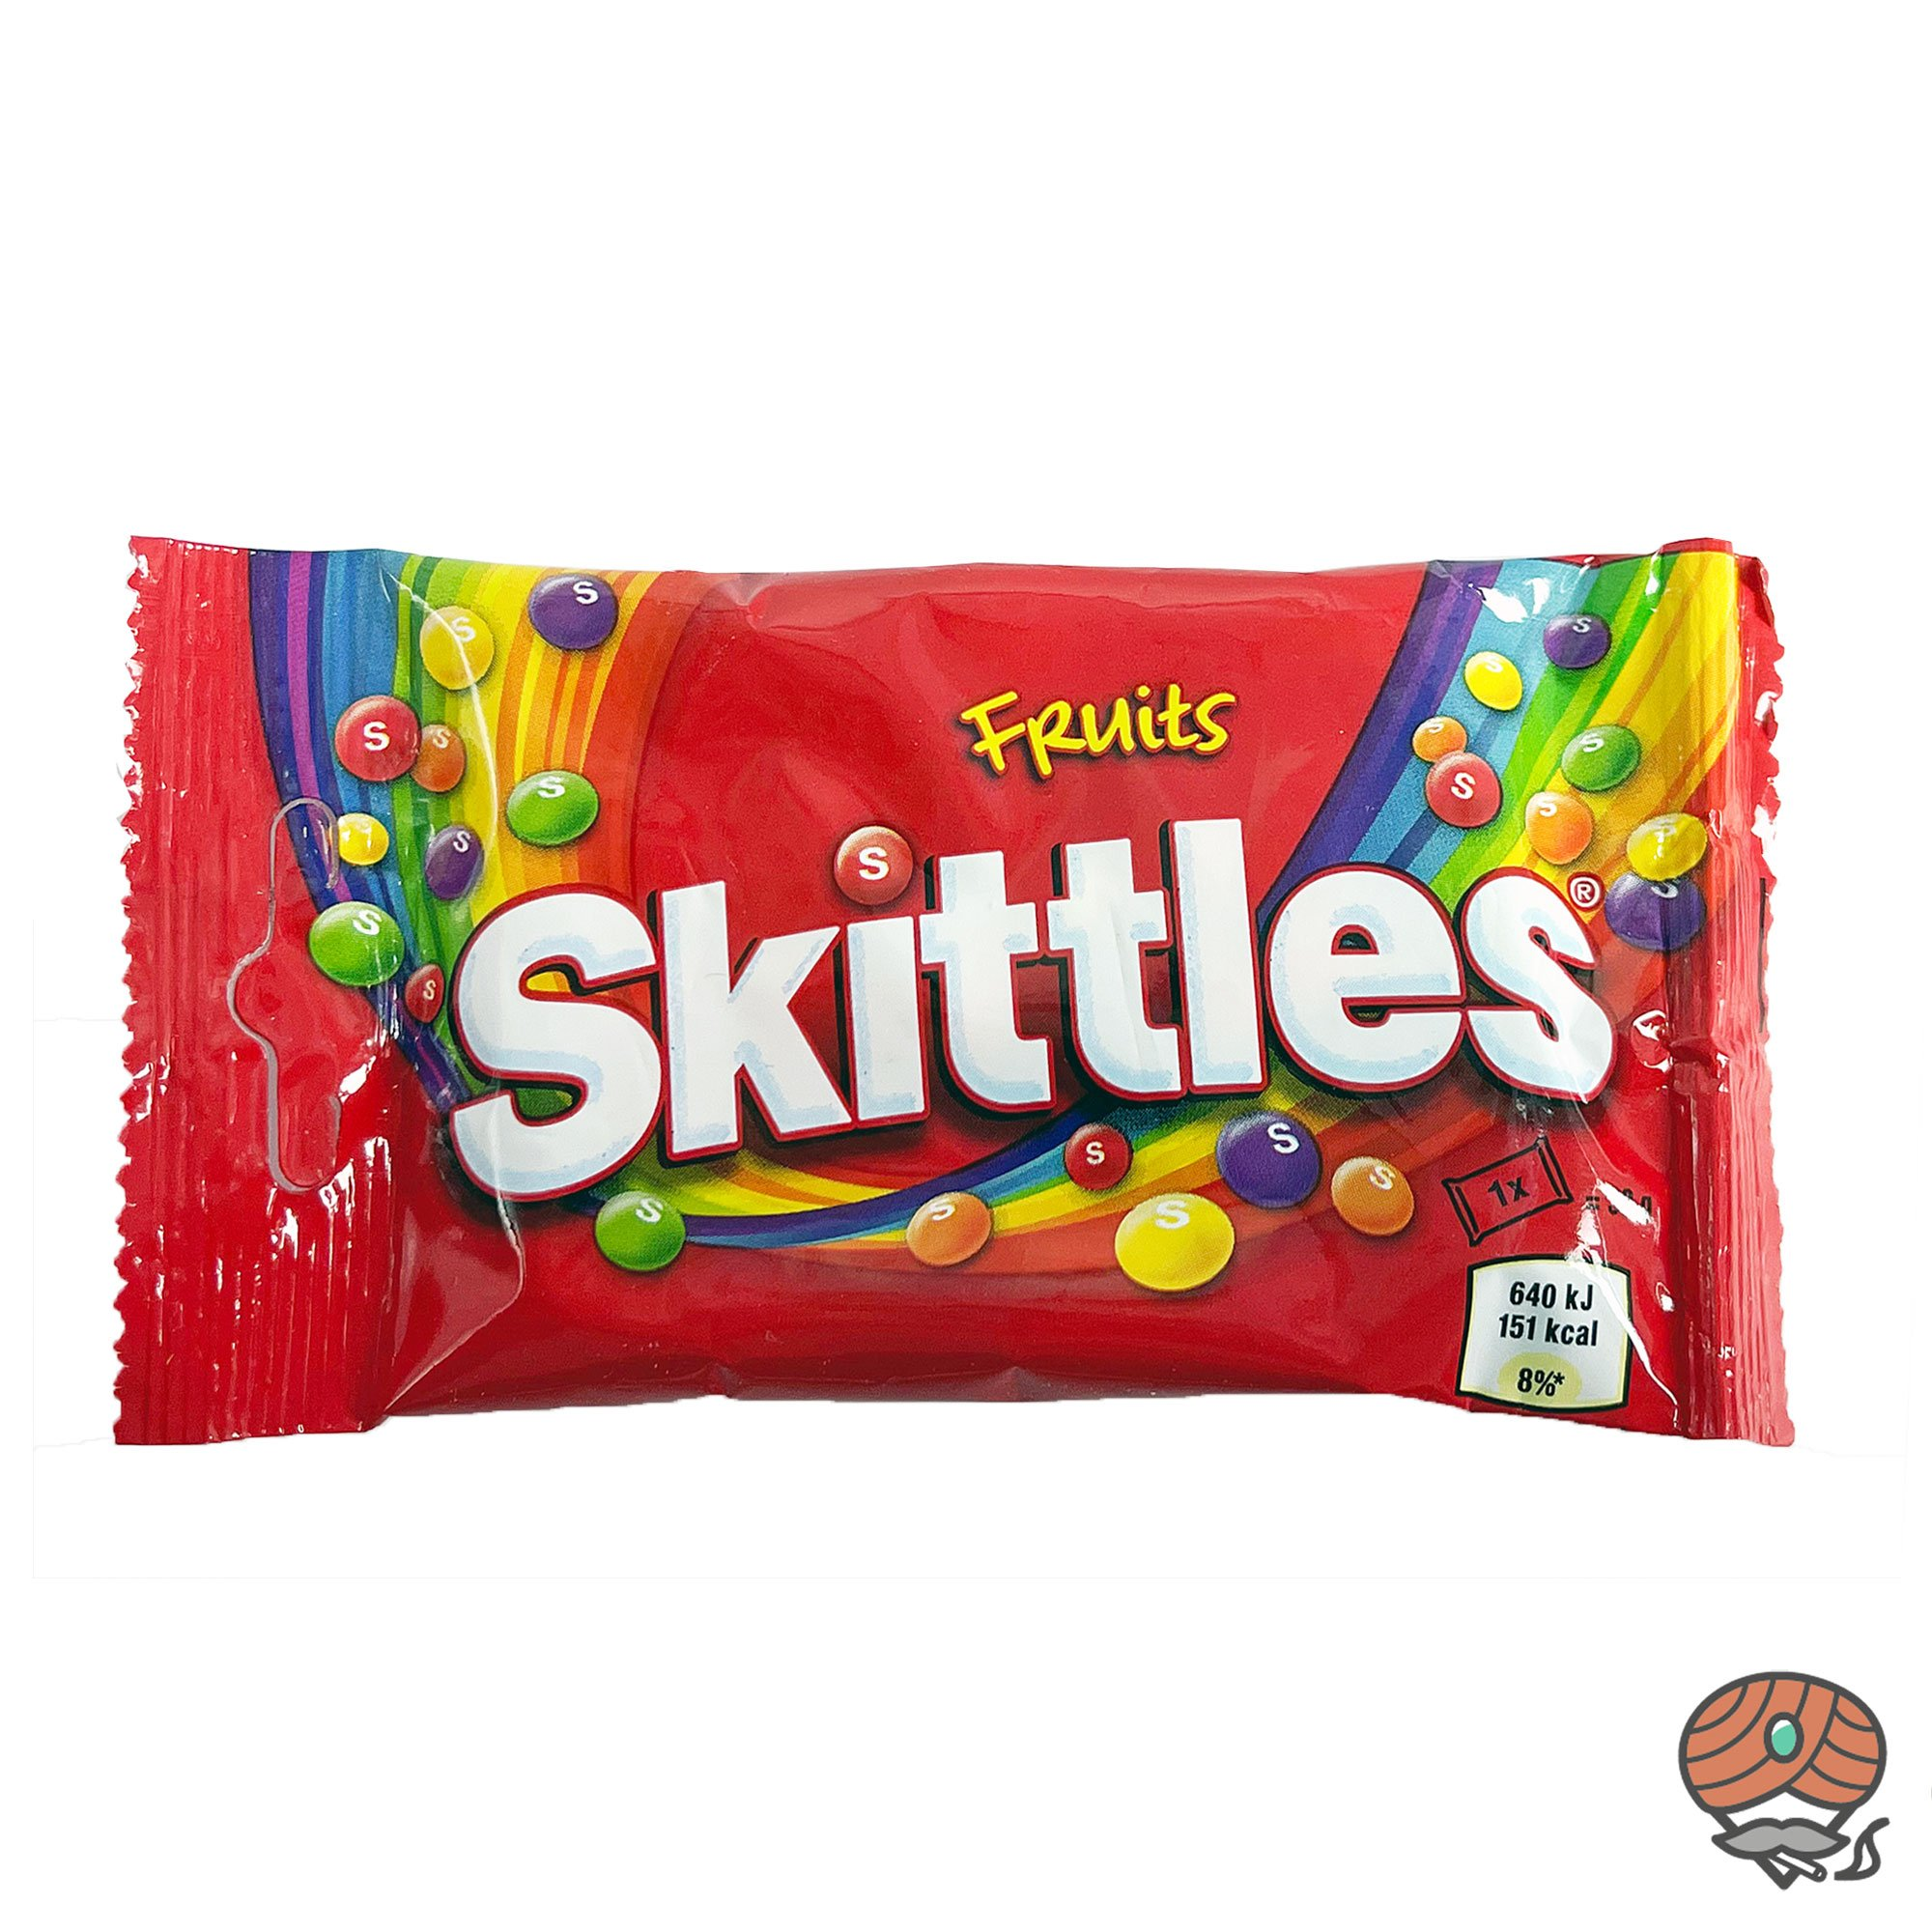 Skittles Fruits Kaudragees